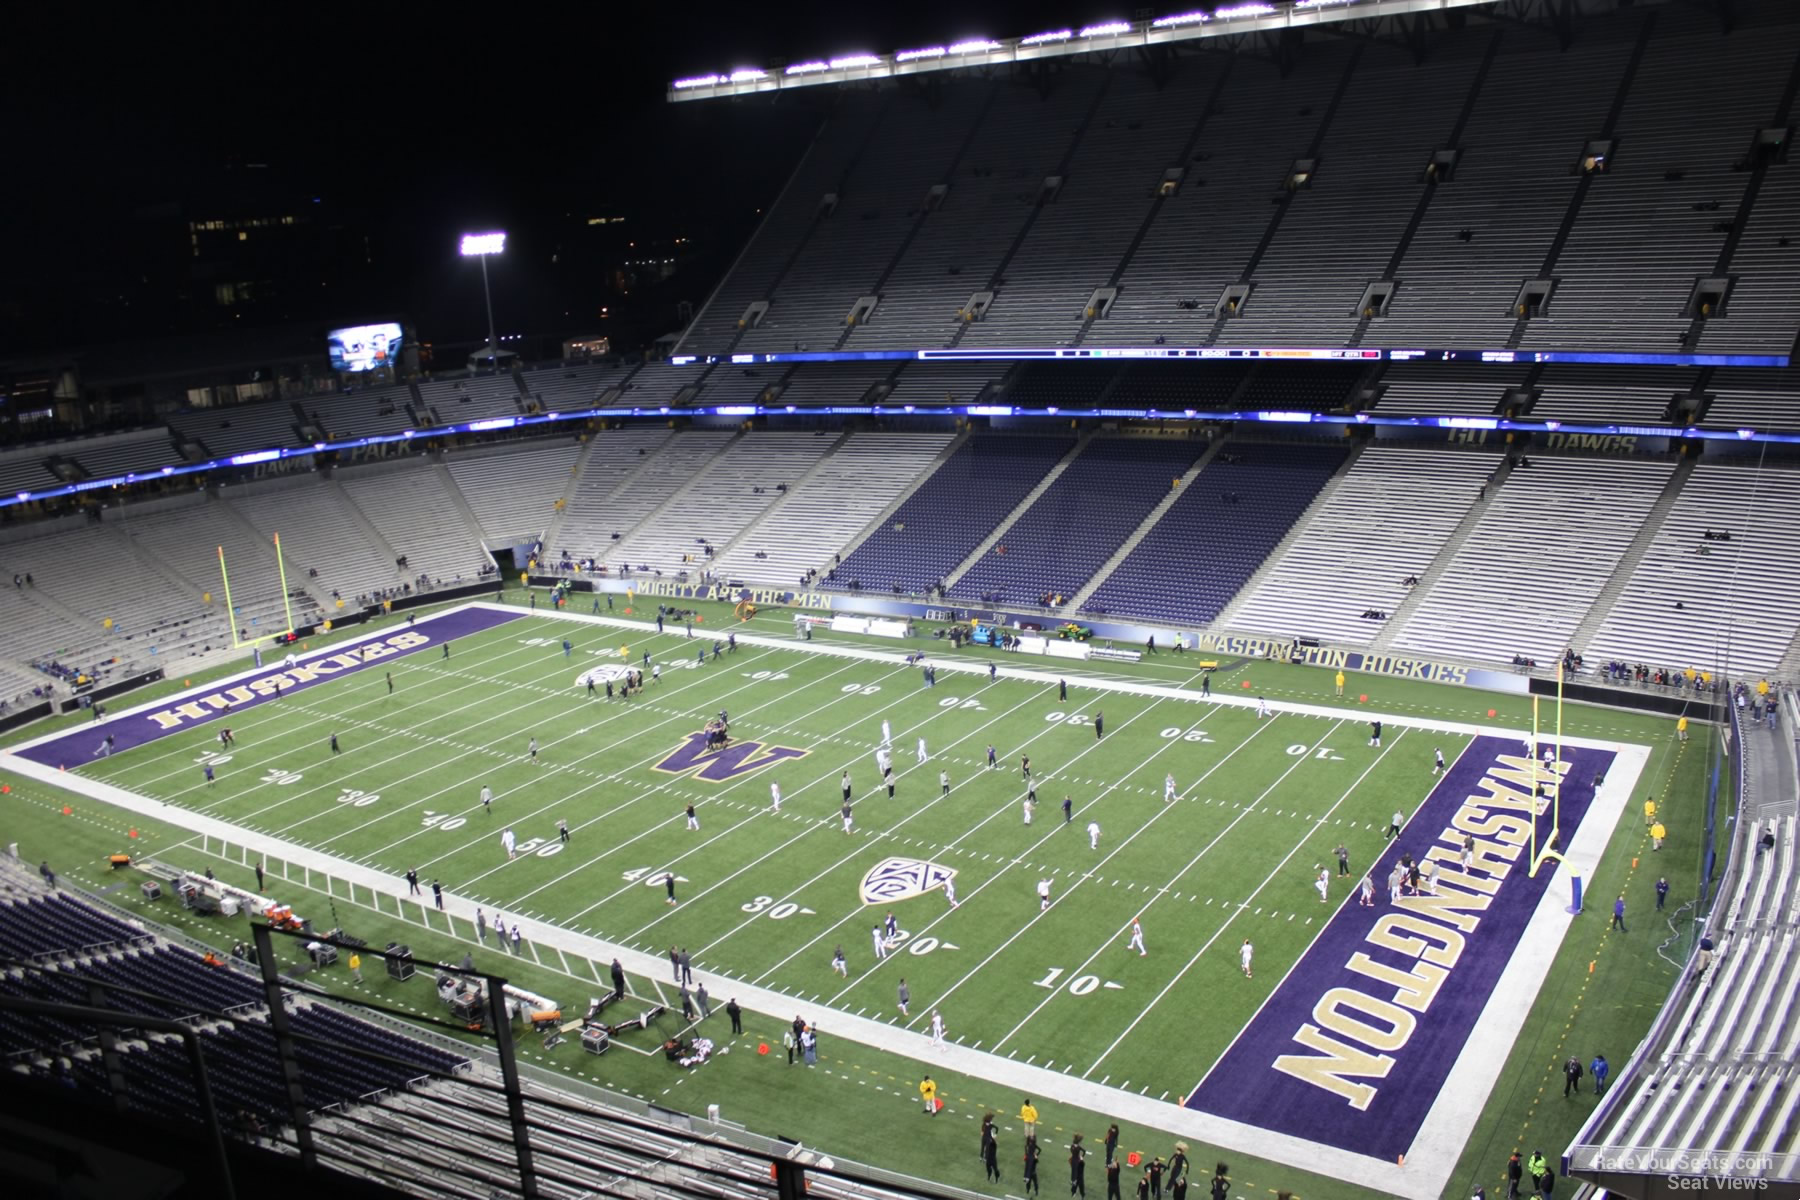 View From Section 301 Row 30 at Husky Stadium